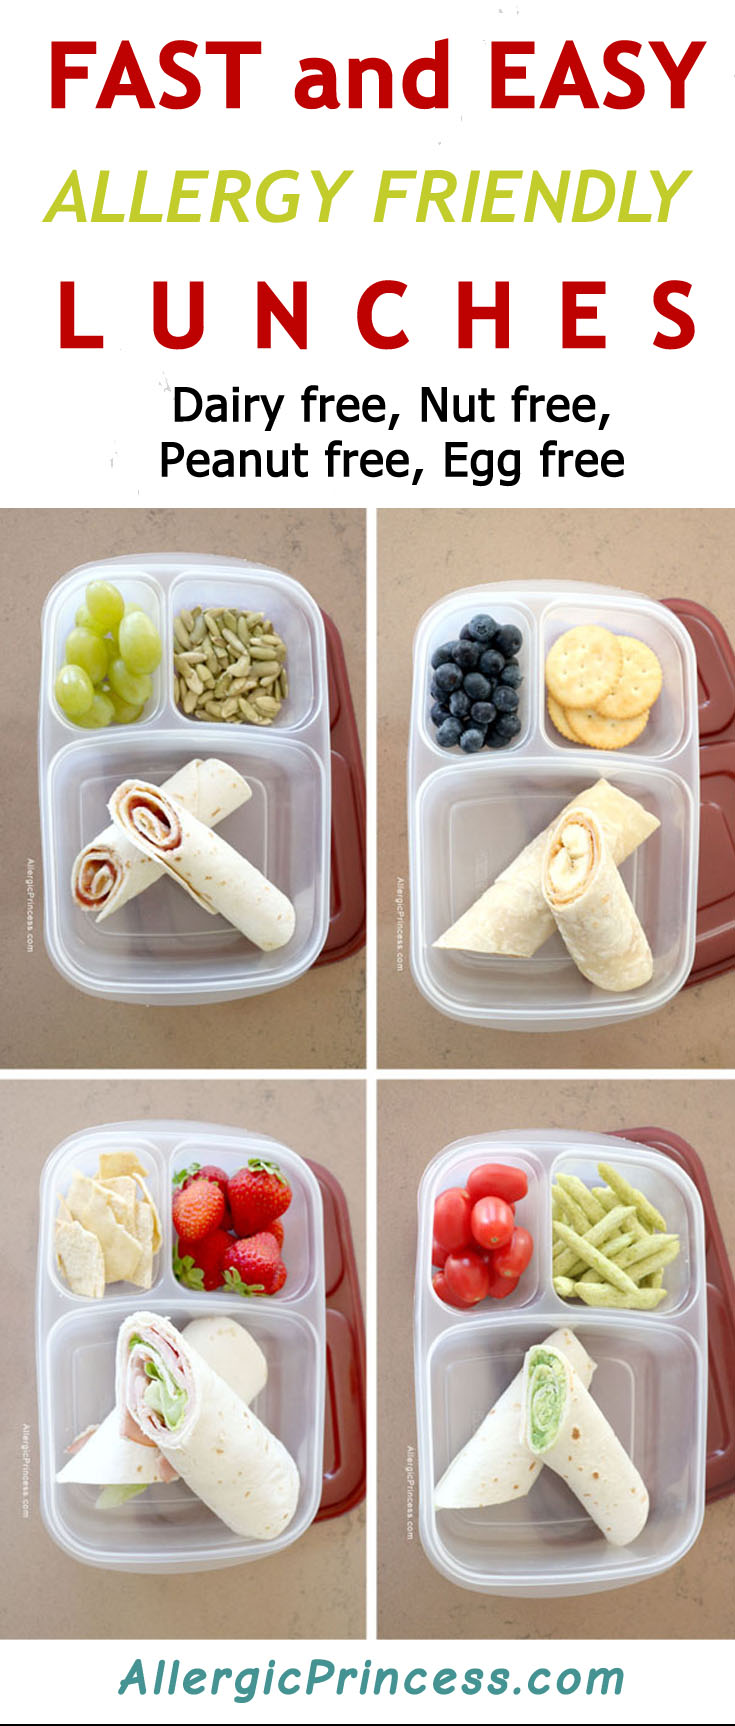 Fast Easy Allergy Friendly Lunches. Free from dairy, nuts, peanuts, eggs.